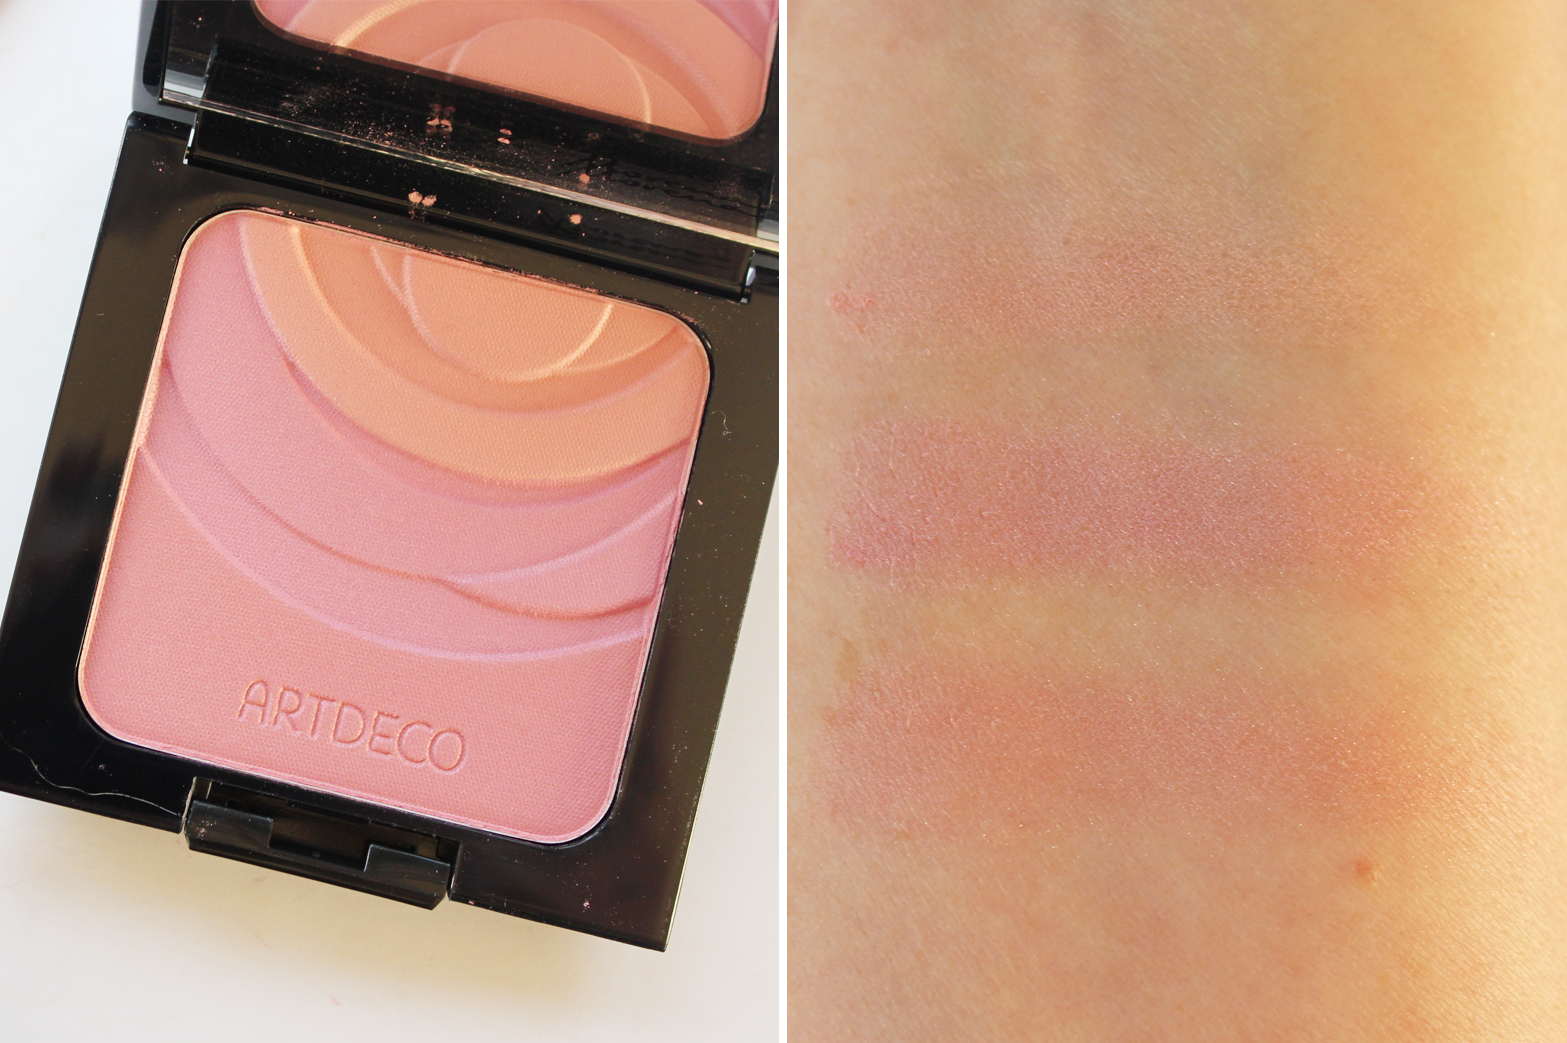 ARTDECO | Emilio de la Morena Collection - Review + Swatches - Blush Couture Blush - CassandraMyee